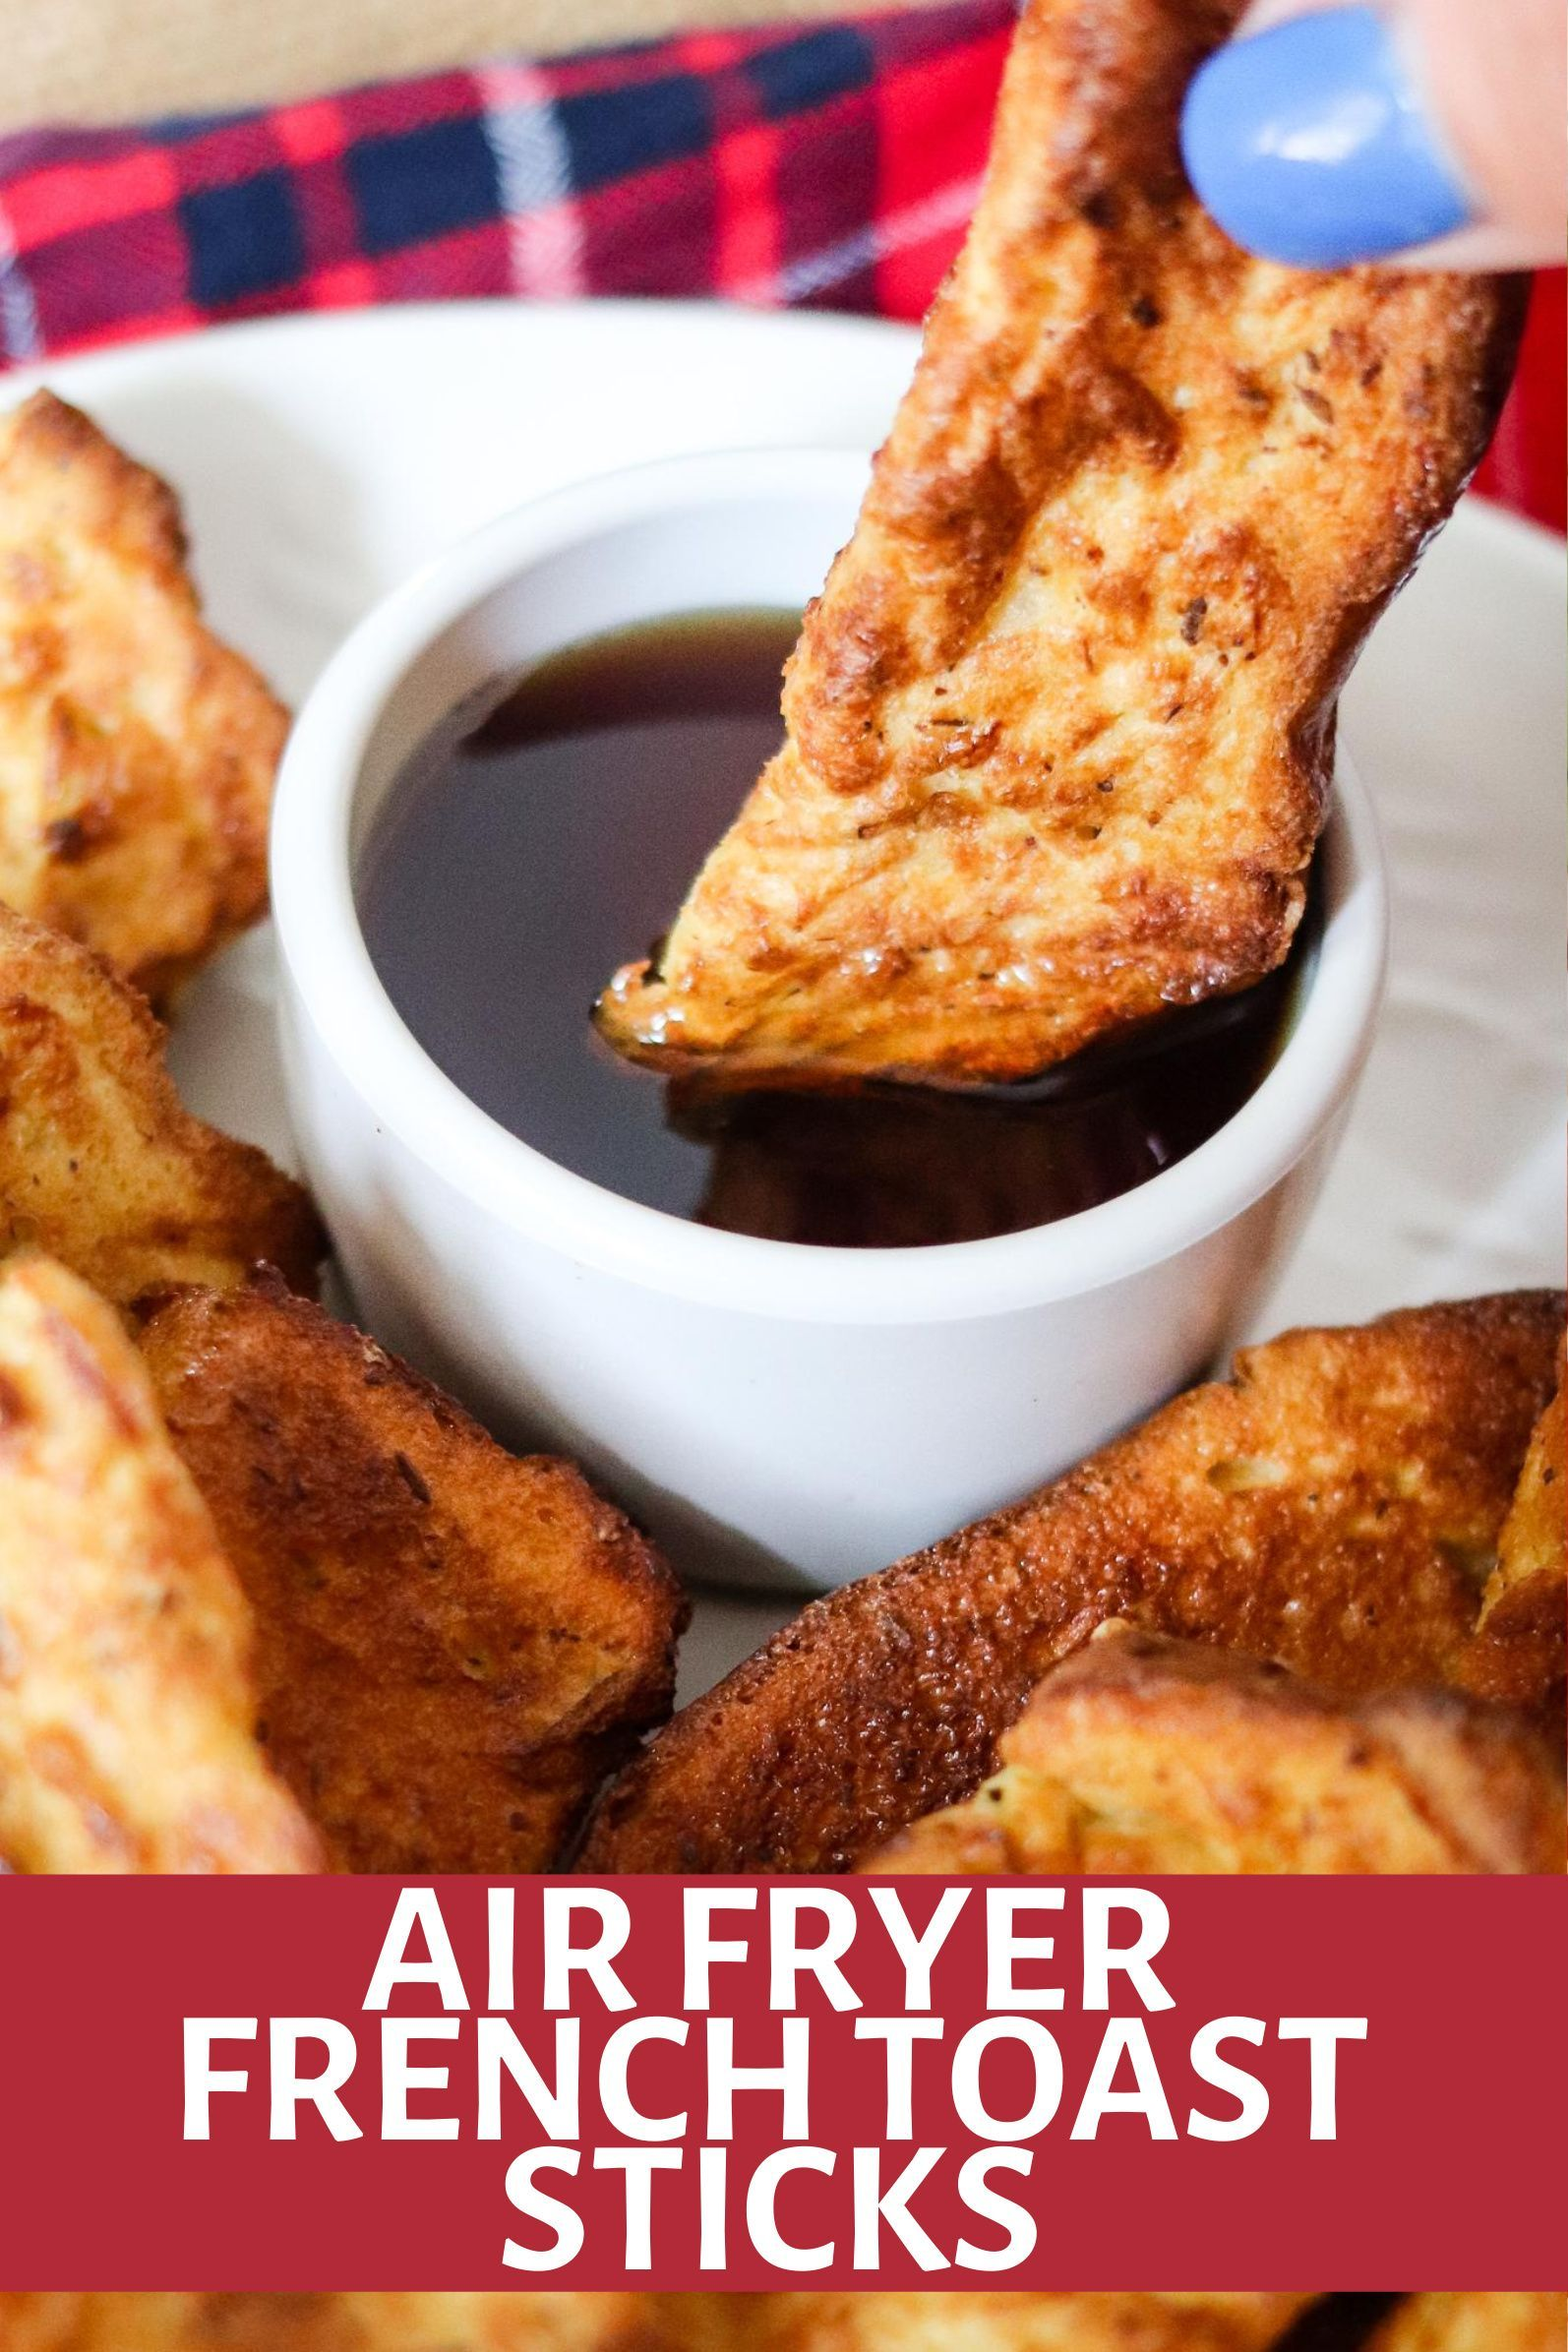 Homemade Air Fryer French Toast Sticks in 2020 French